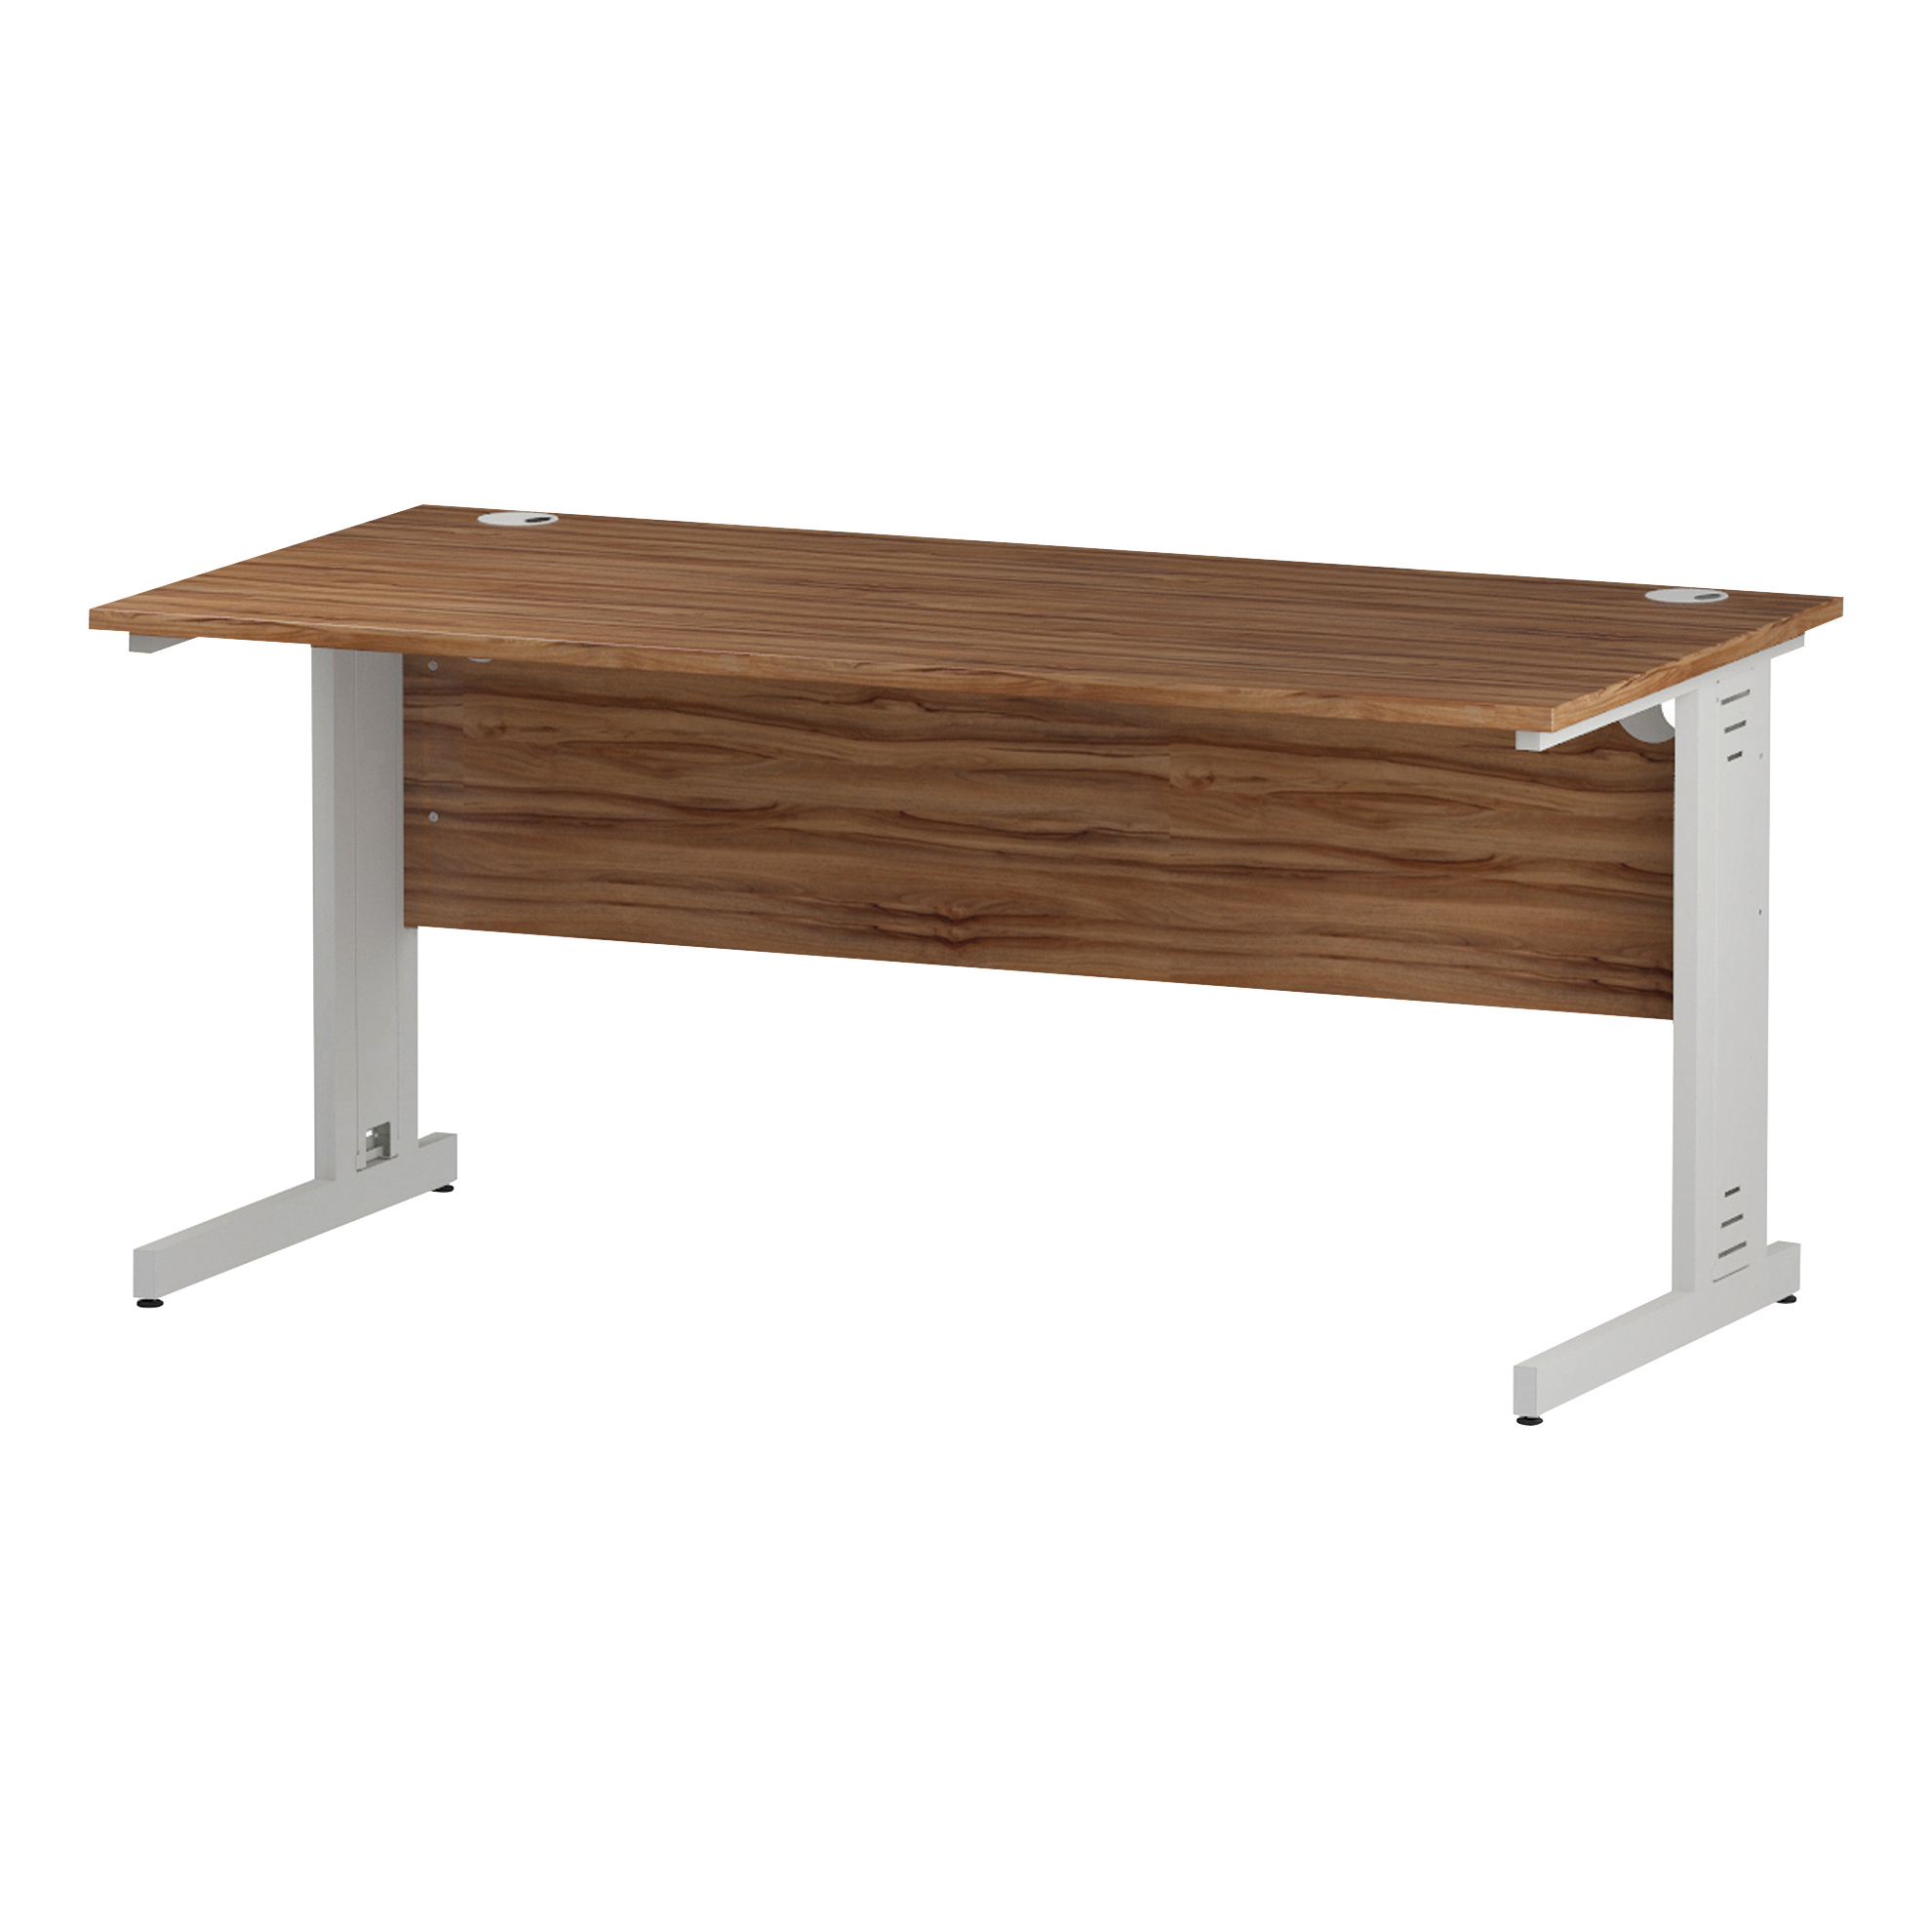 Trexus Rectangular Desk White Cable Managed Leg 1600x800mm Walnut Ref I001997